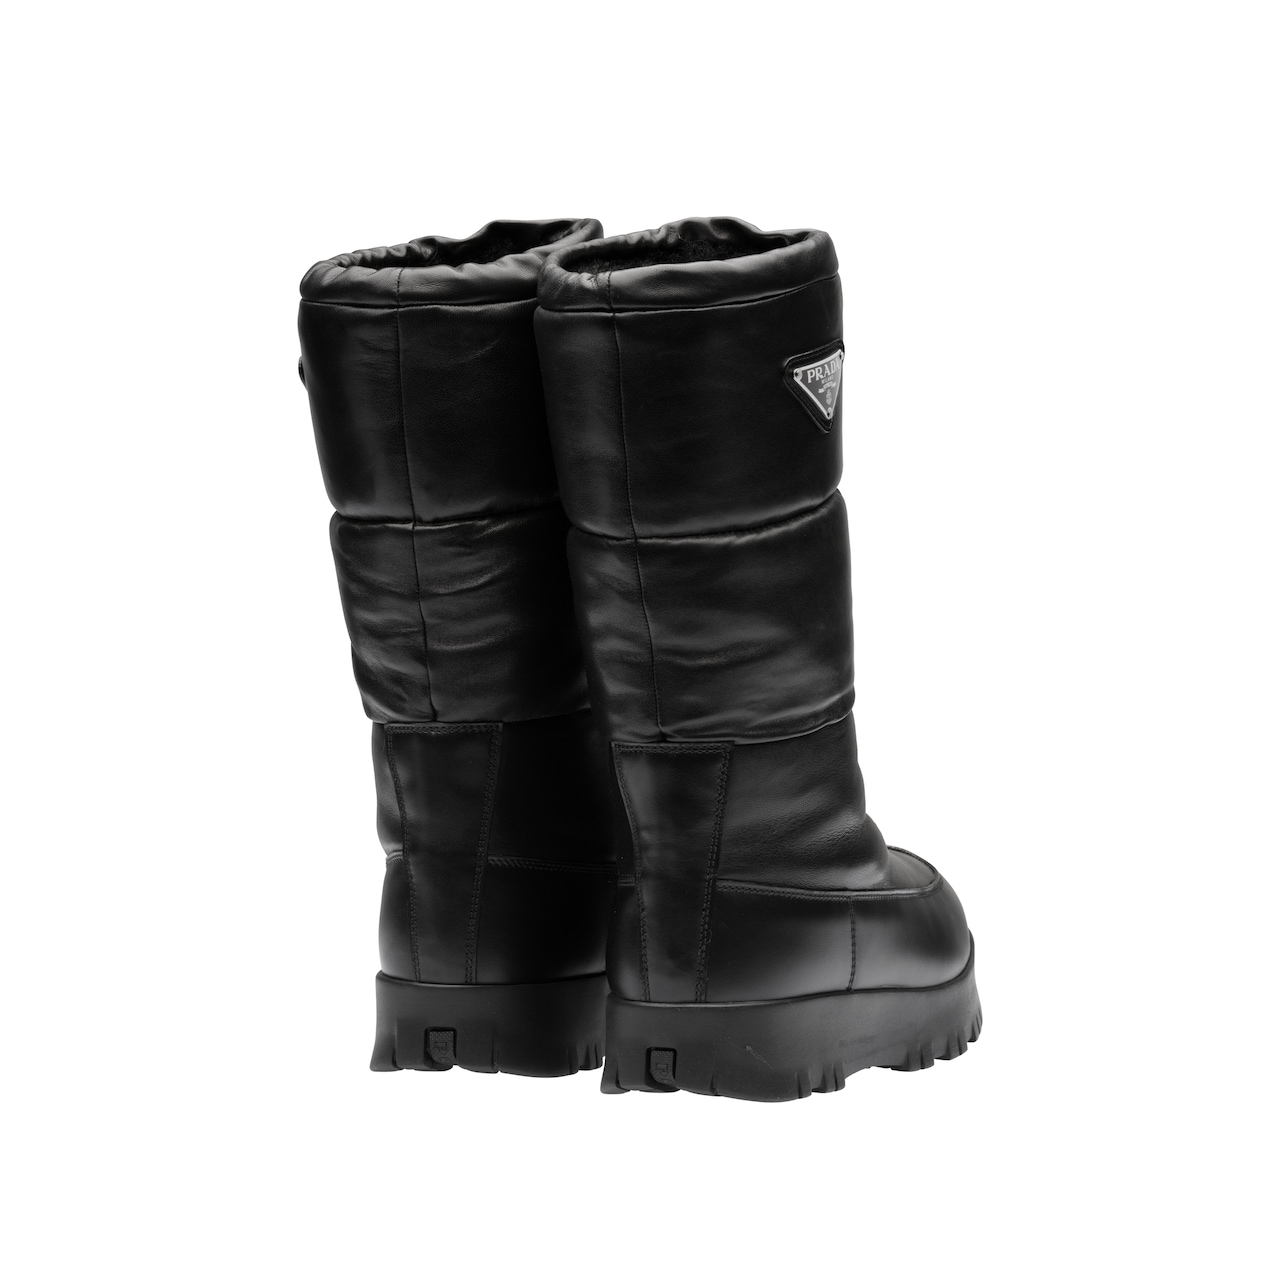 Nappa leather moon boots 3